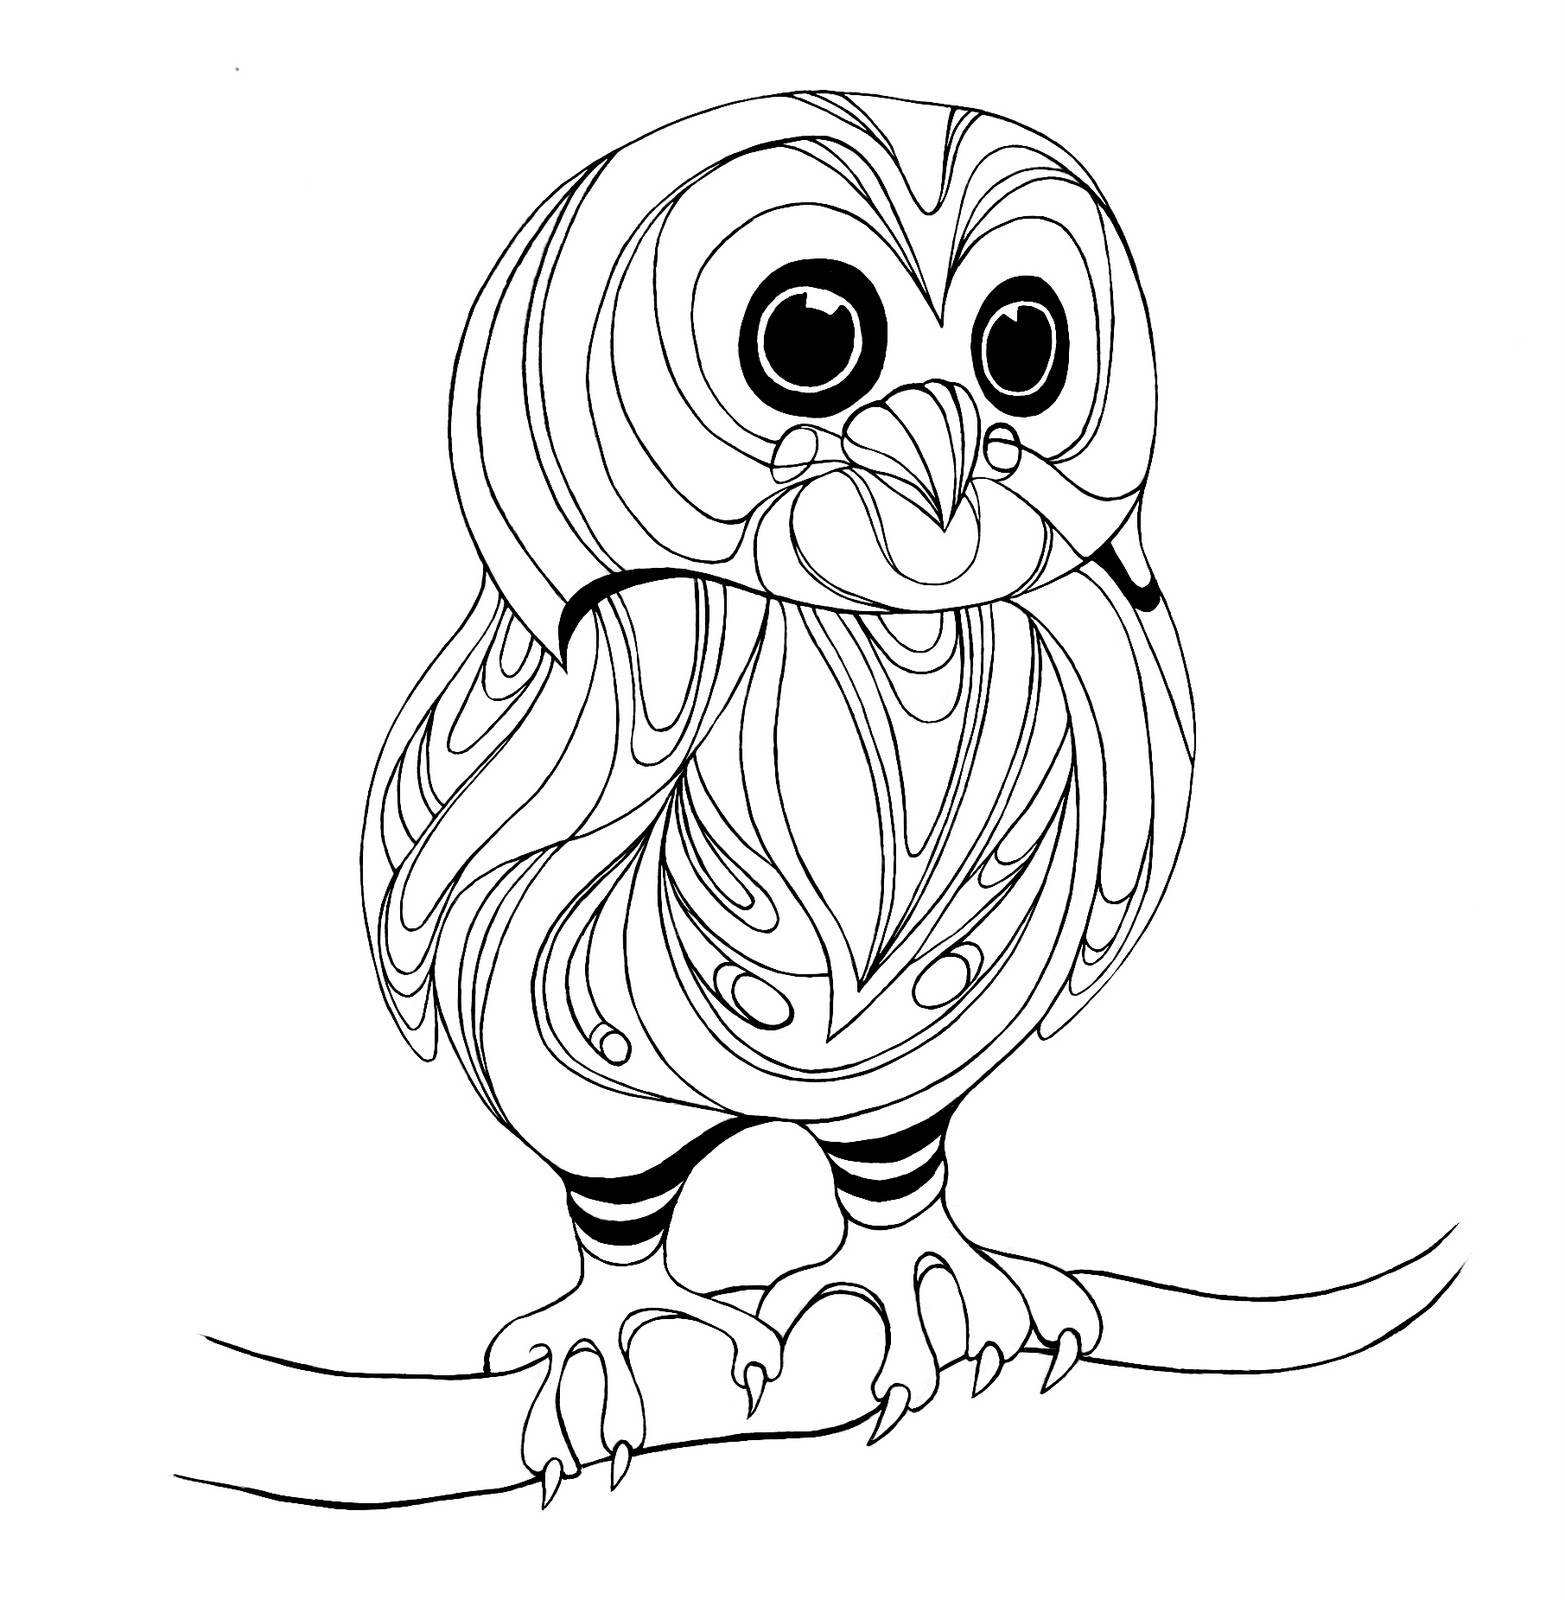 printable owl images free easy to print owl coloring pages tulamama owl images printable